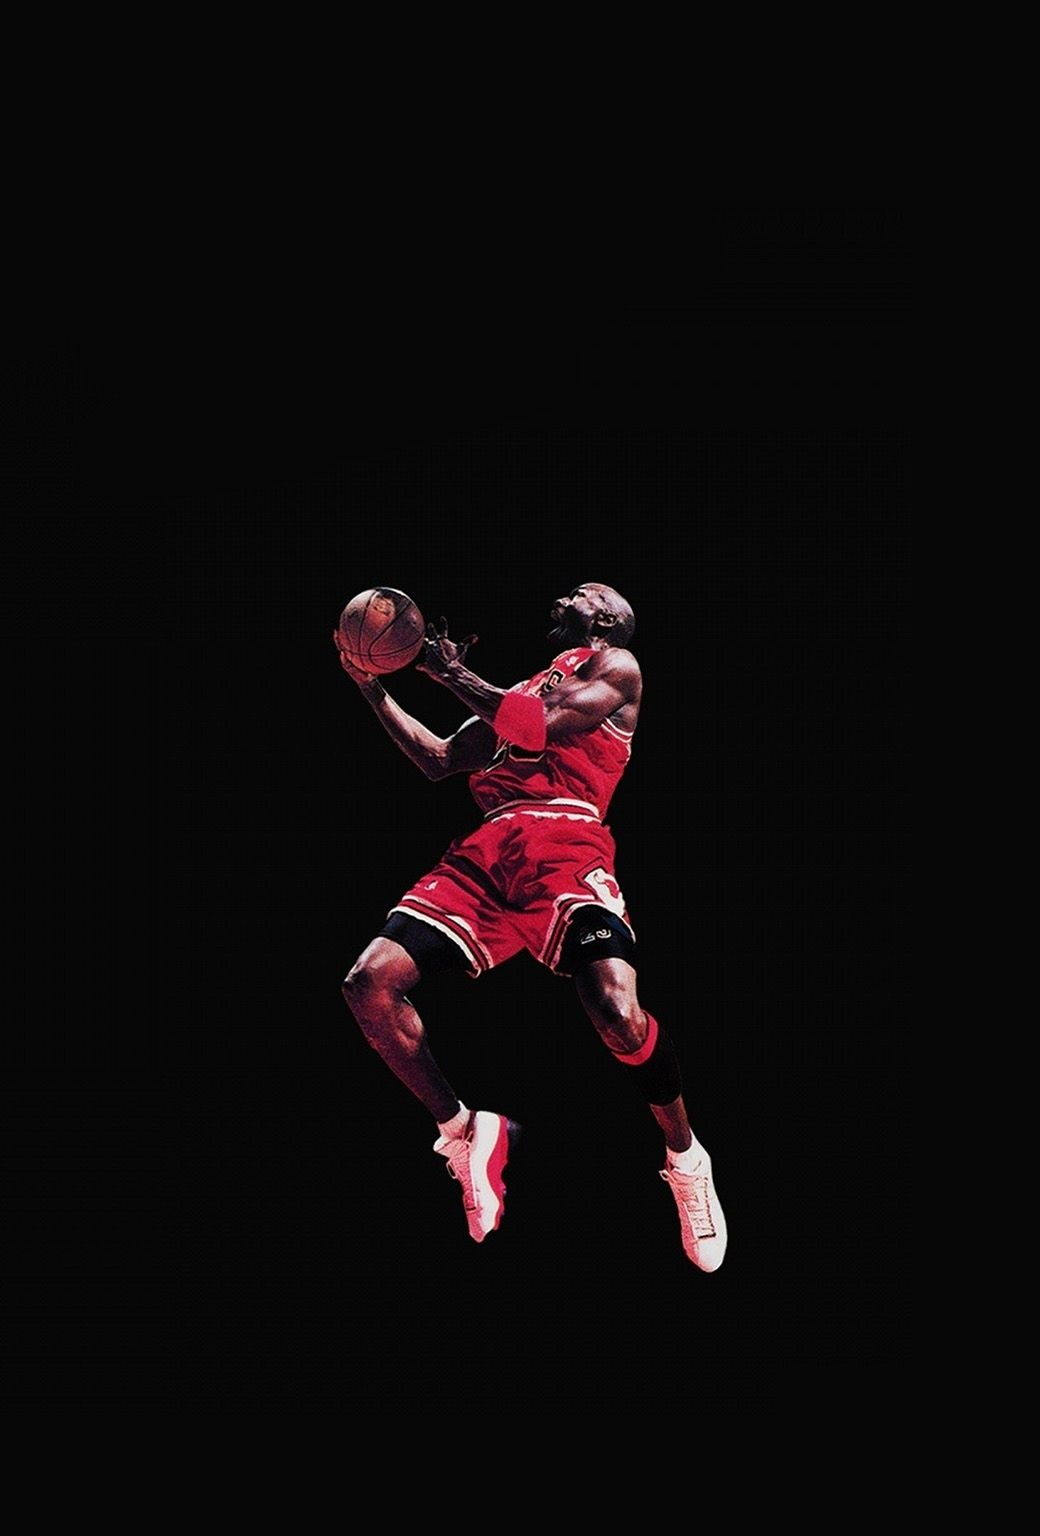 "1040x1536 Nike Wallpapers HD IPhone Group (66)""> · Download · 1600x900 Cool Nike Wallpapers ..."